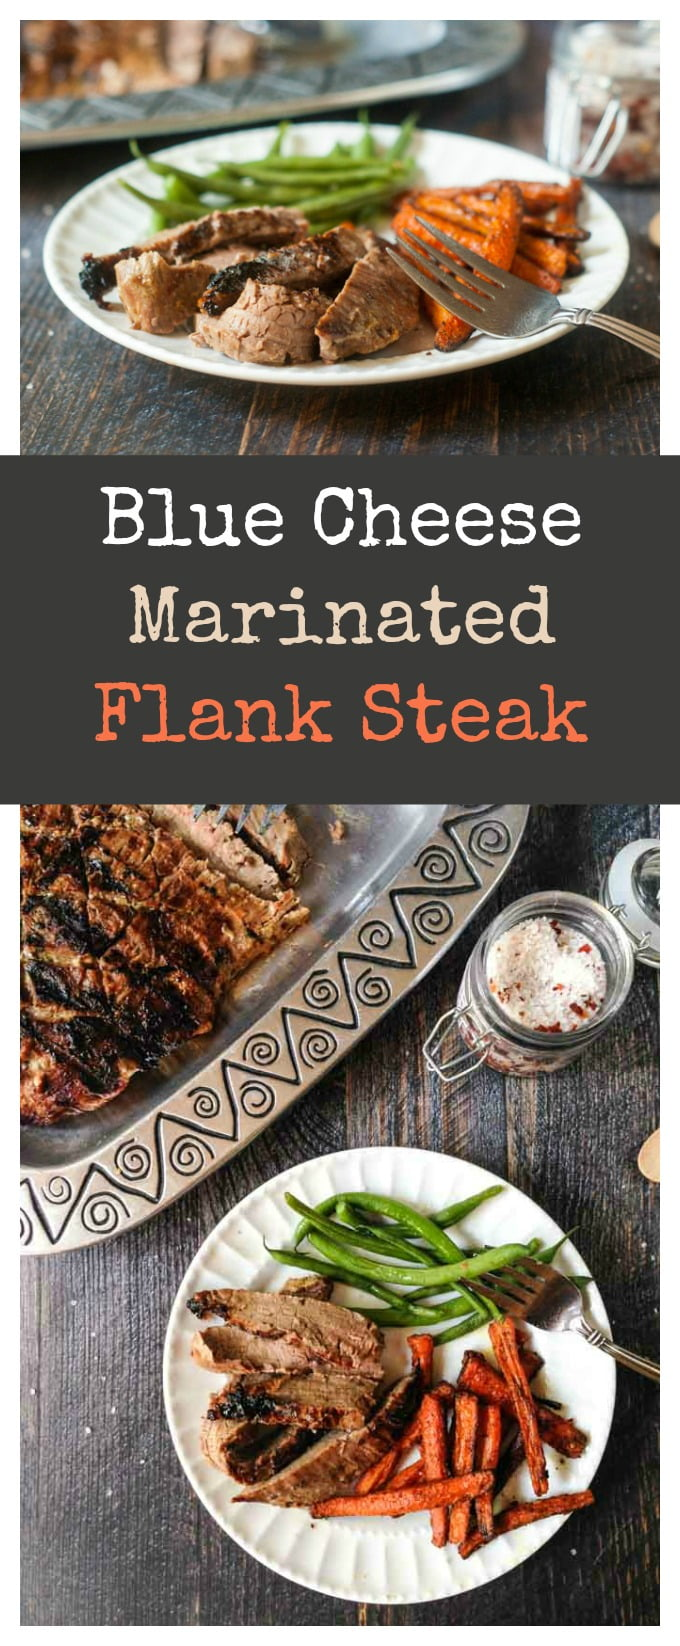 This blue cheese marinated flank steak is so tasty and easy. Perfect for a summer meal on the grill.